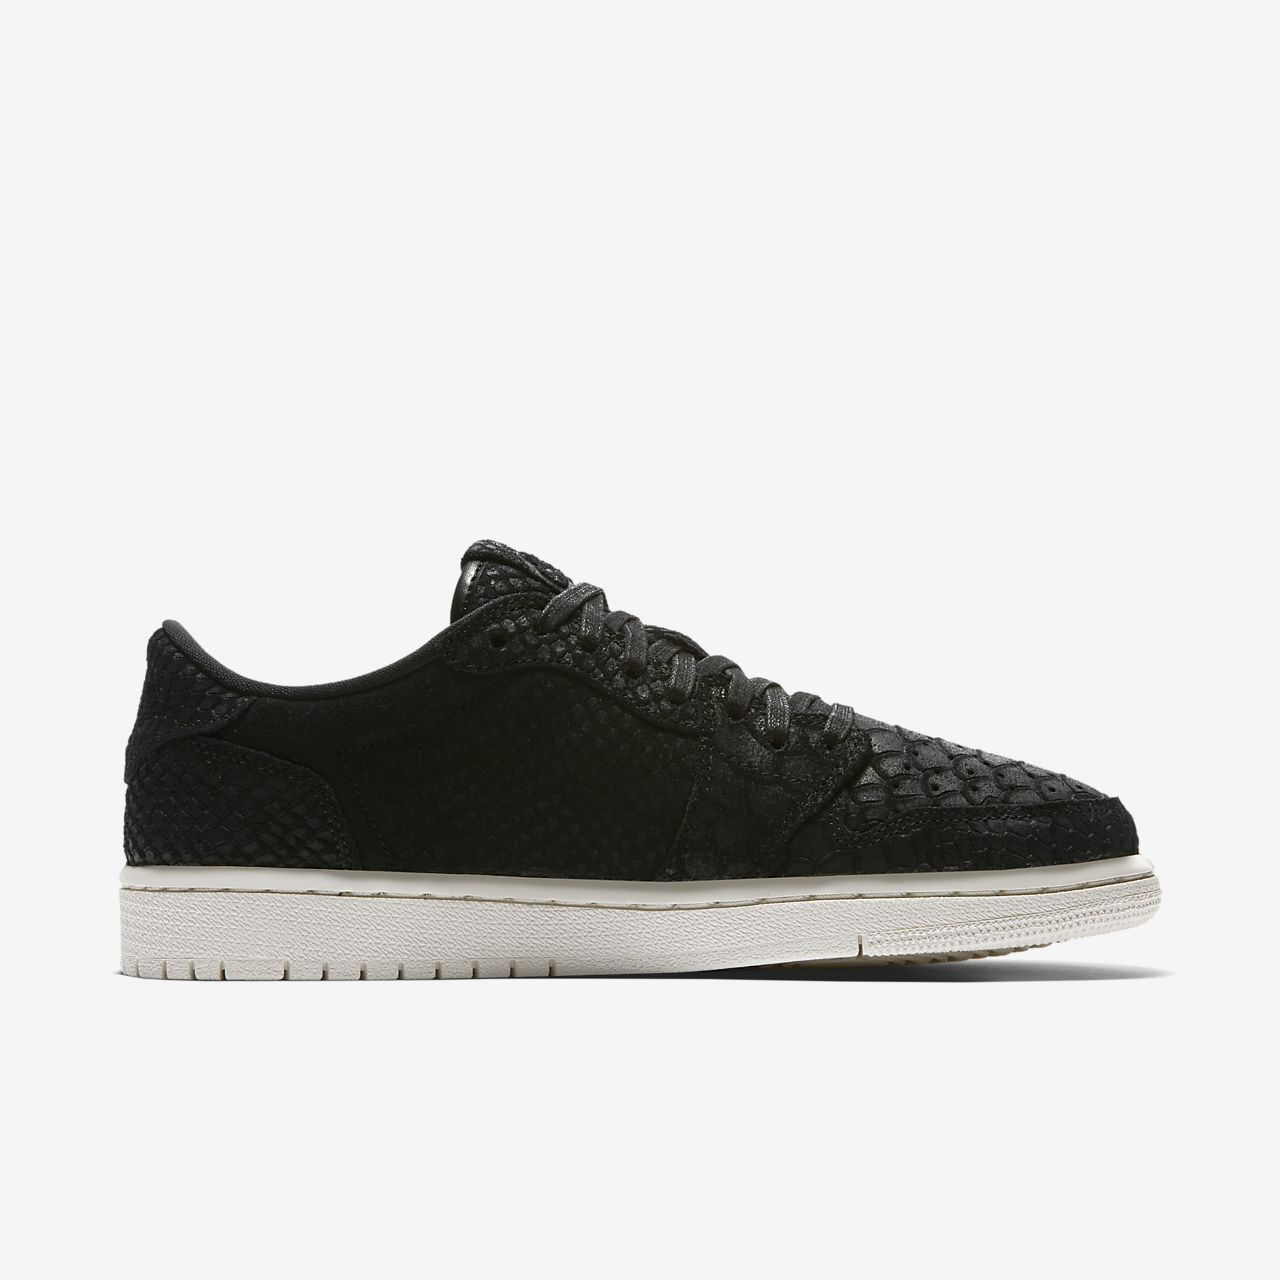 nike jordan retro 1 shoes nz